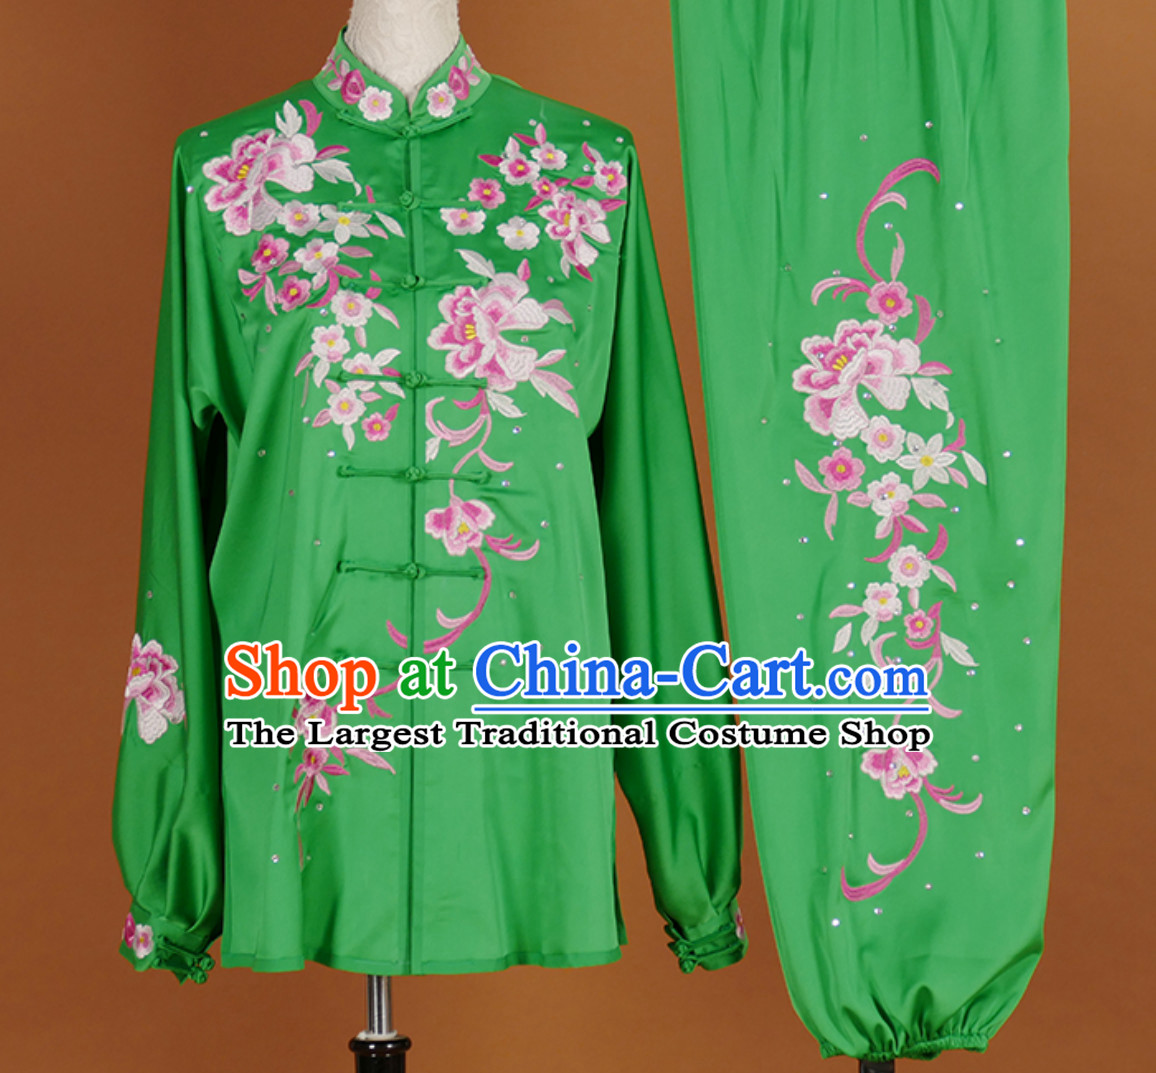 Top Embroidered Green Flower Long Sleeves Tai Chi Suits Martial Arts Clothing Kung Fu Dress Wushu Suits Stage Performance Championship Competition Full Set